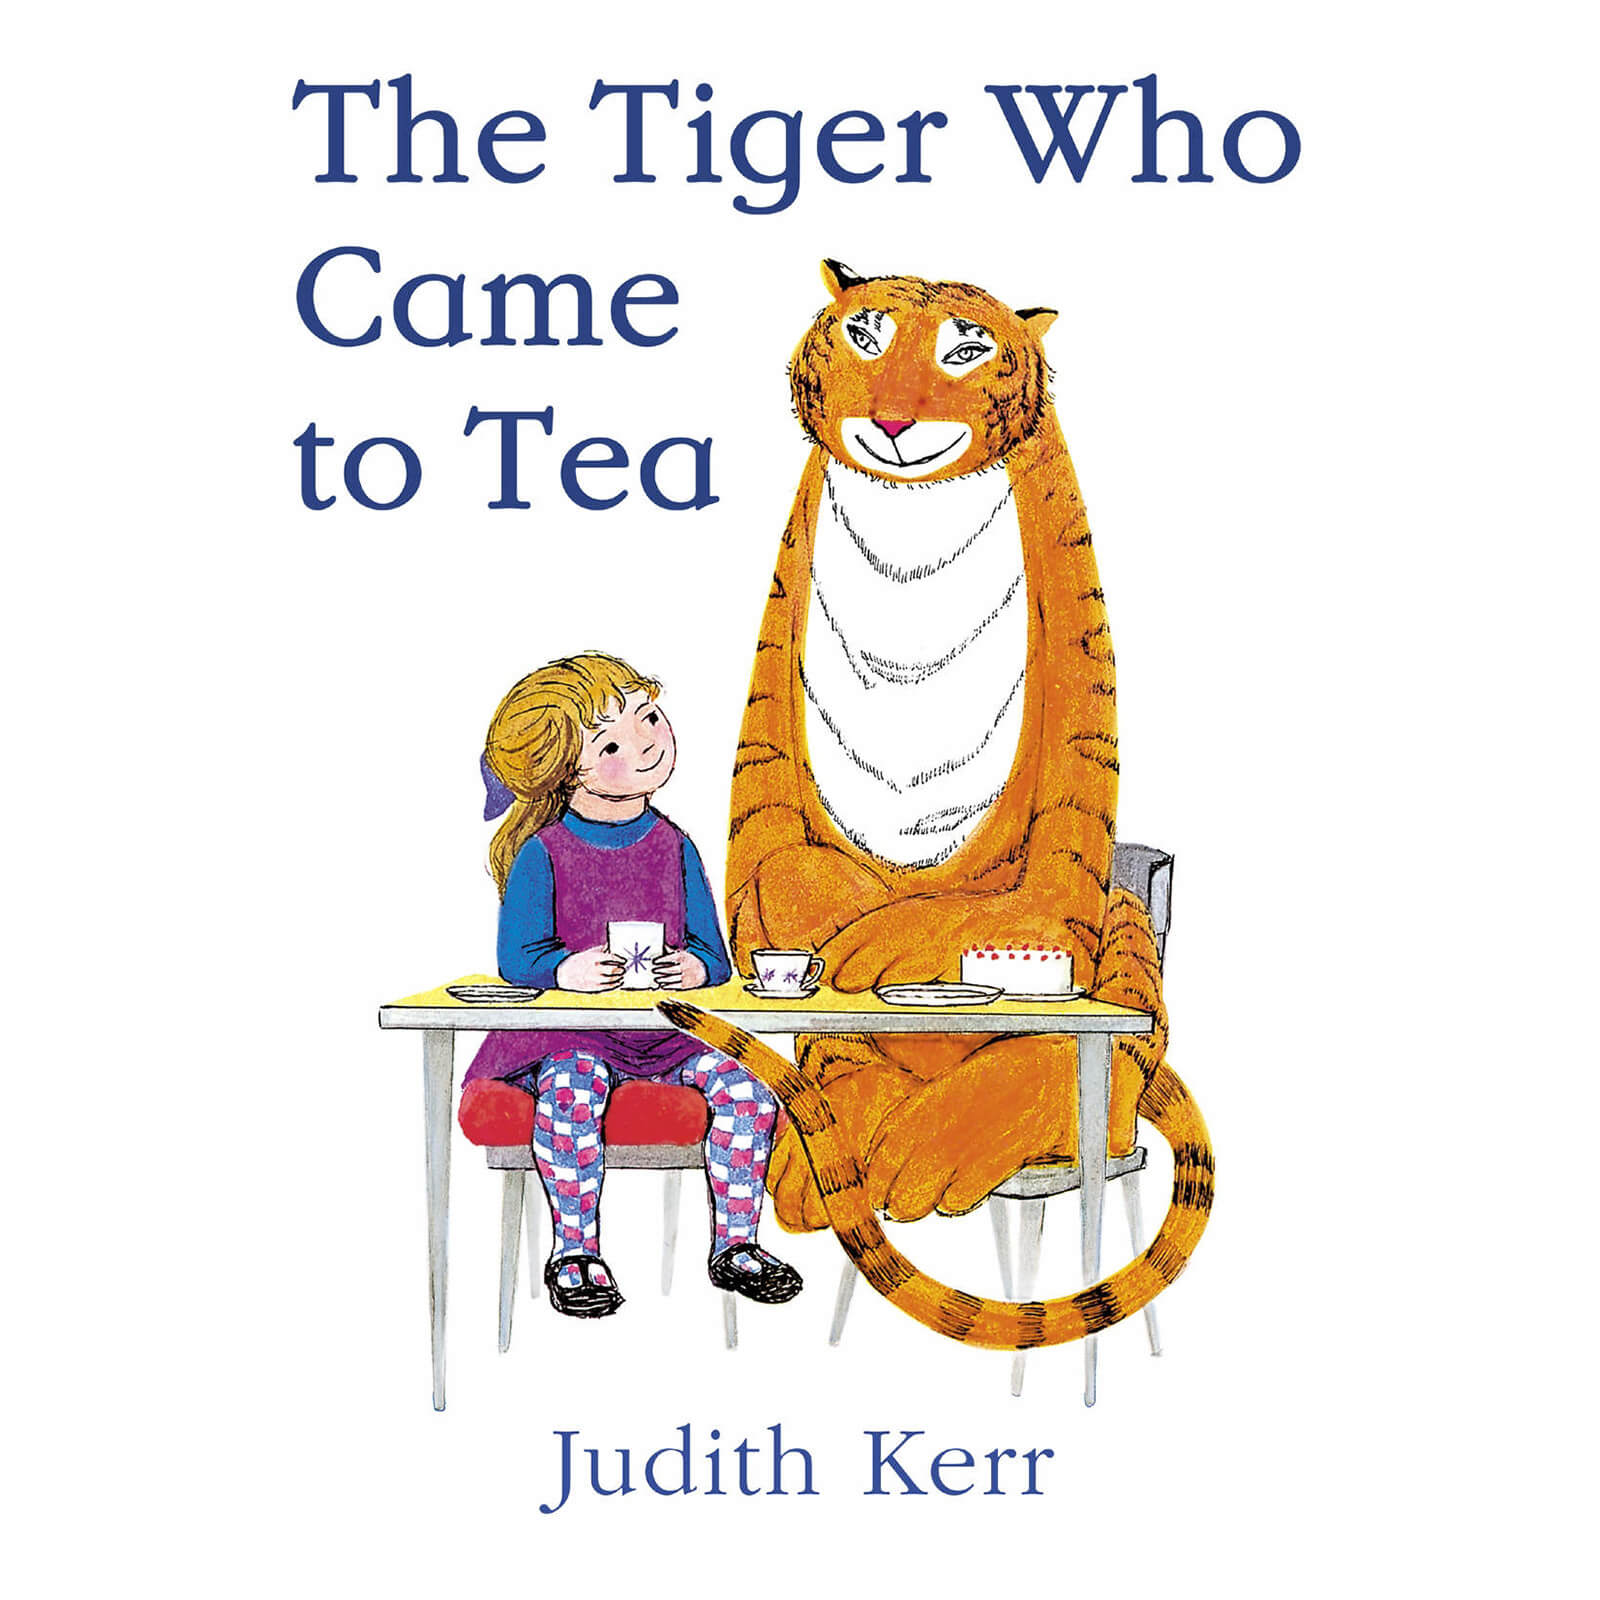 The Tiger Who Came to Tea - Judith Kerr (Paperback)